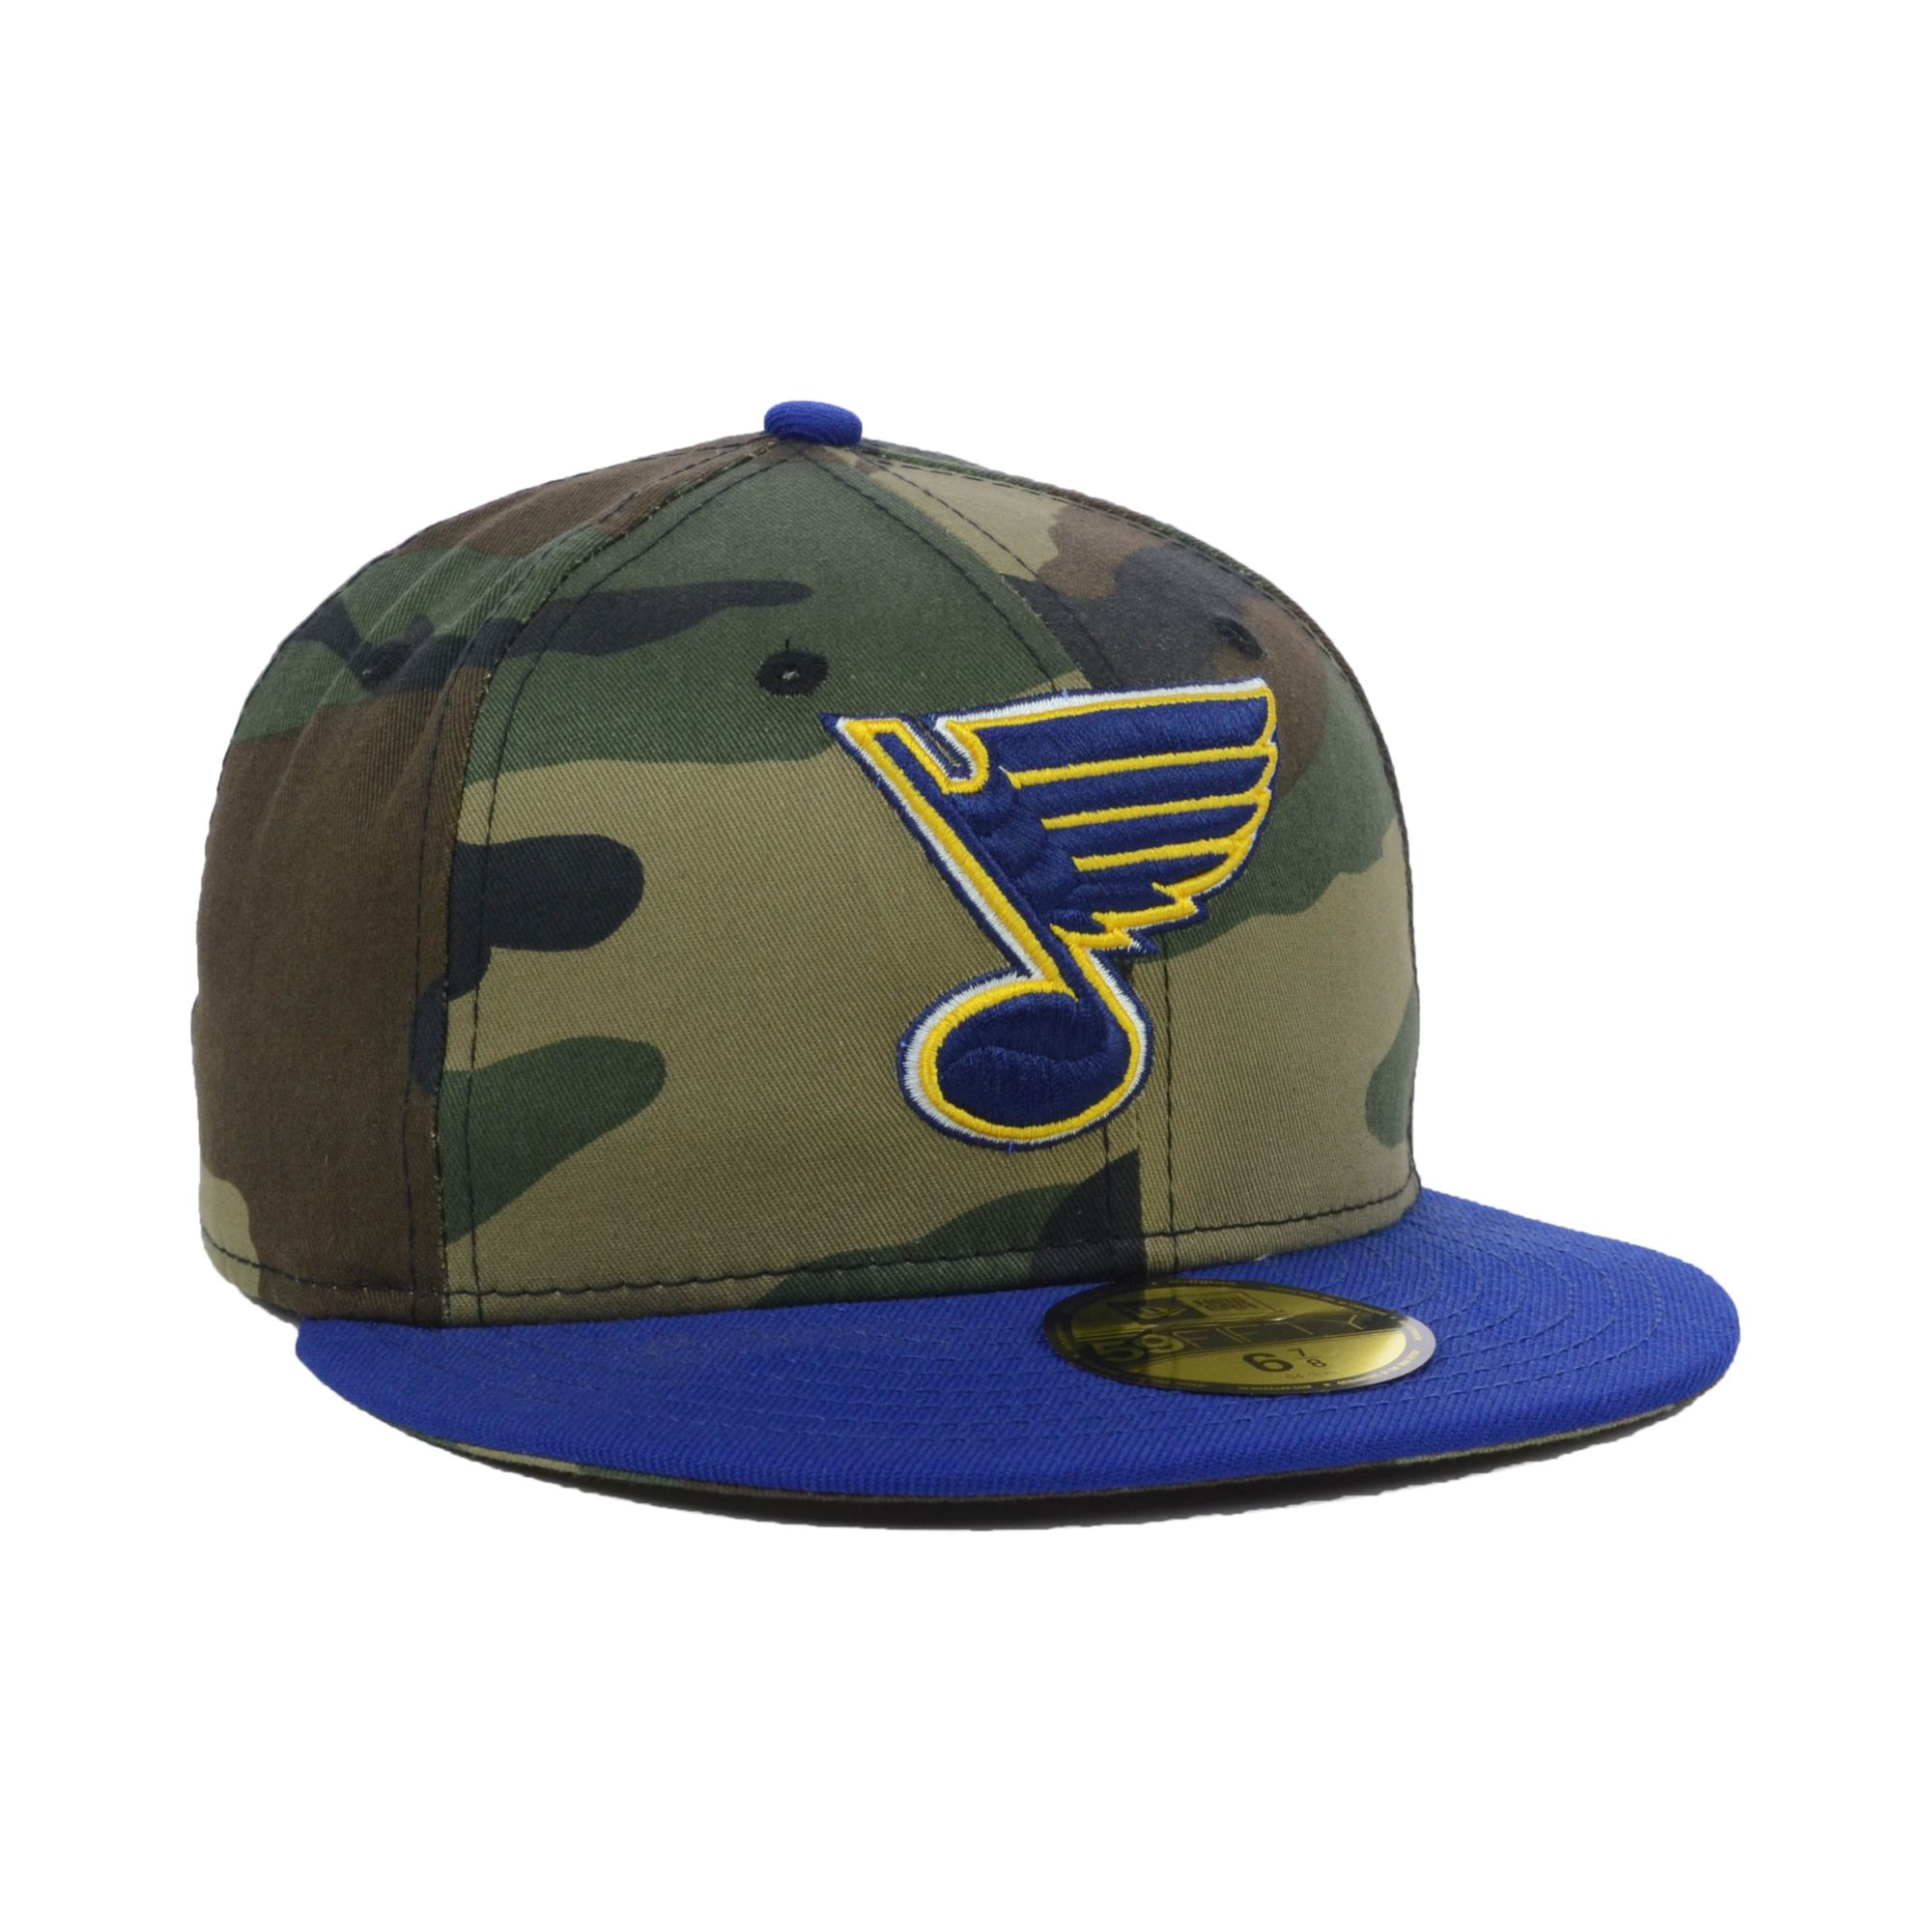 5aad5503397e2 ... clearance cheapest lyst ktz st louis blues nhl woodland tc 59fifty cap  for men bb774 cedf1 store ...